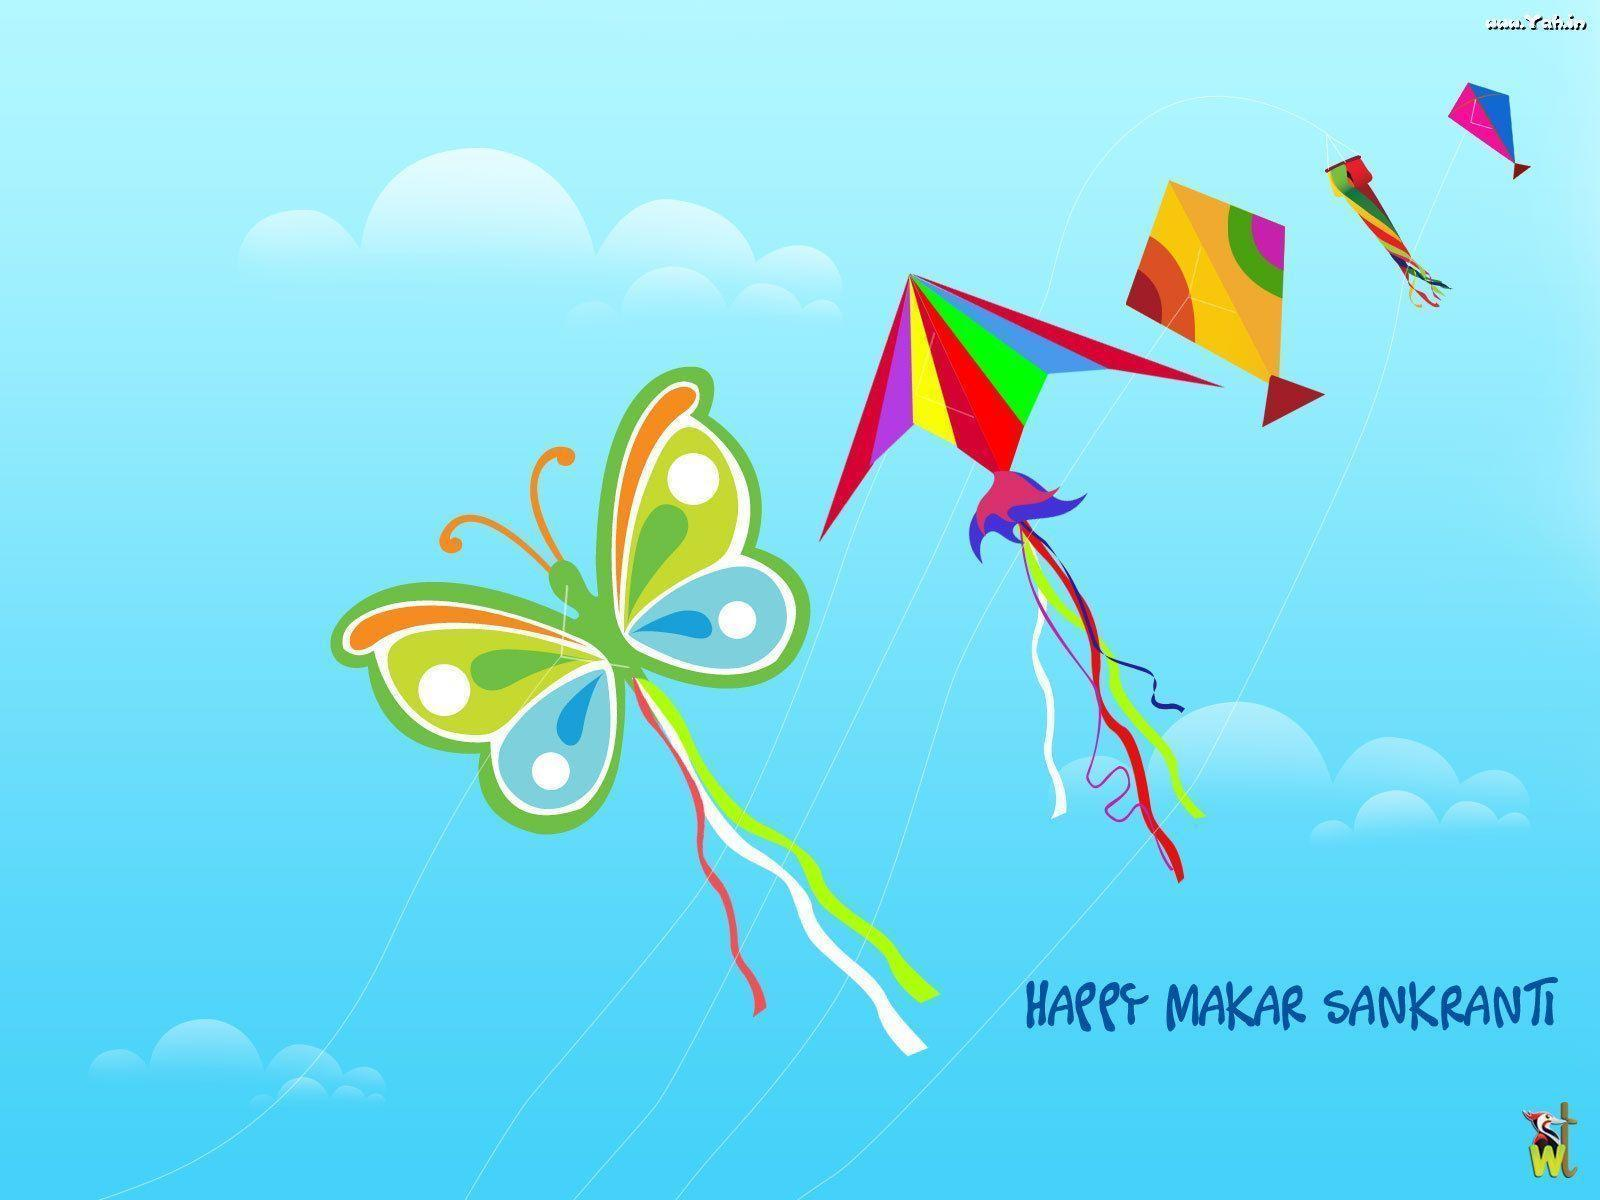 Makar sankranti pictures free download